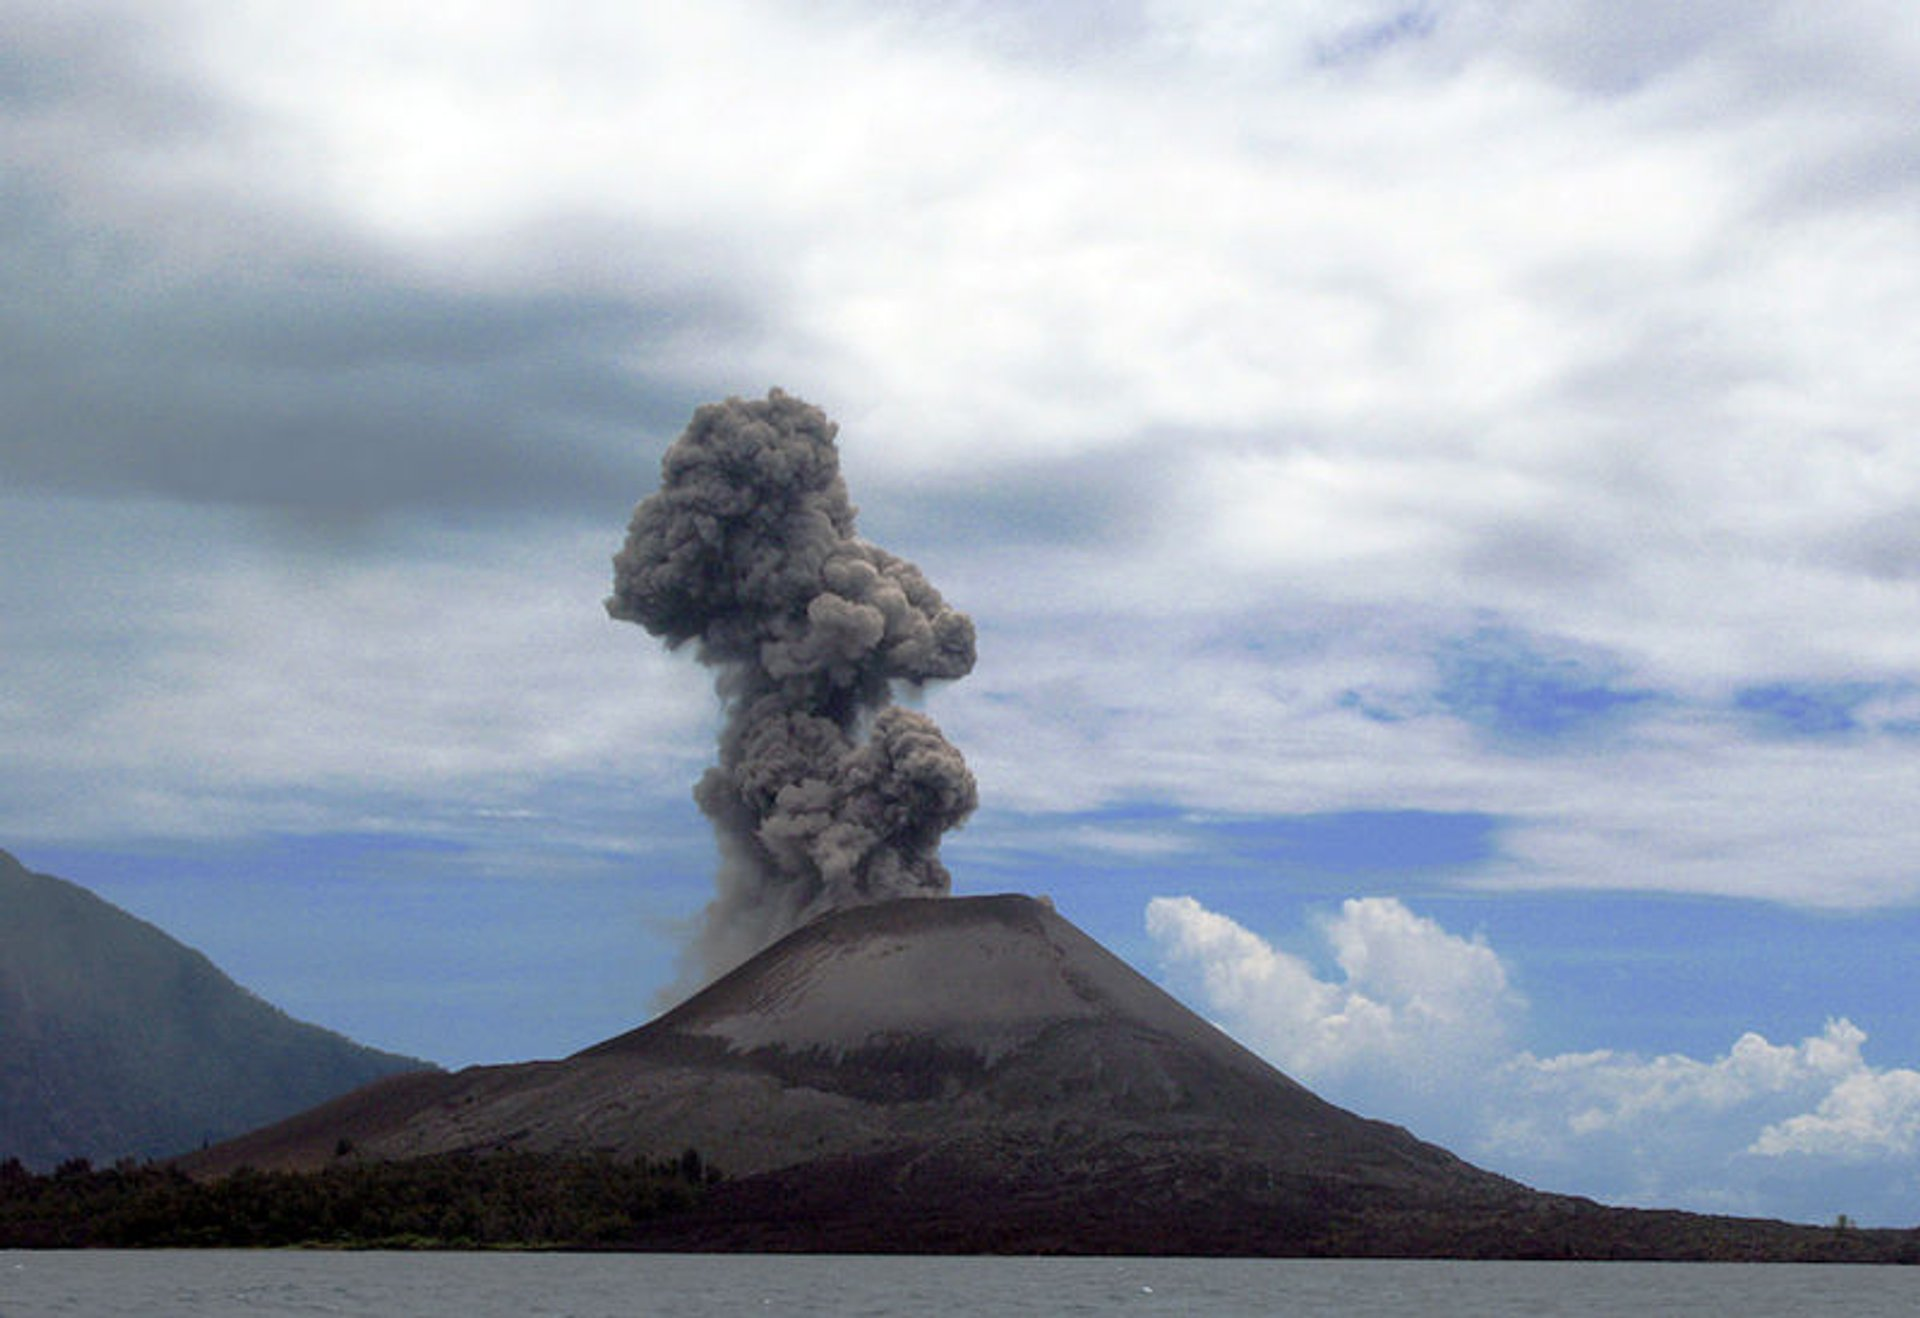 Krakatoa Island and Volcano in Indonesia 2019 - Best Time